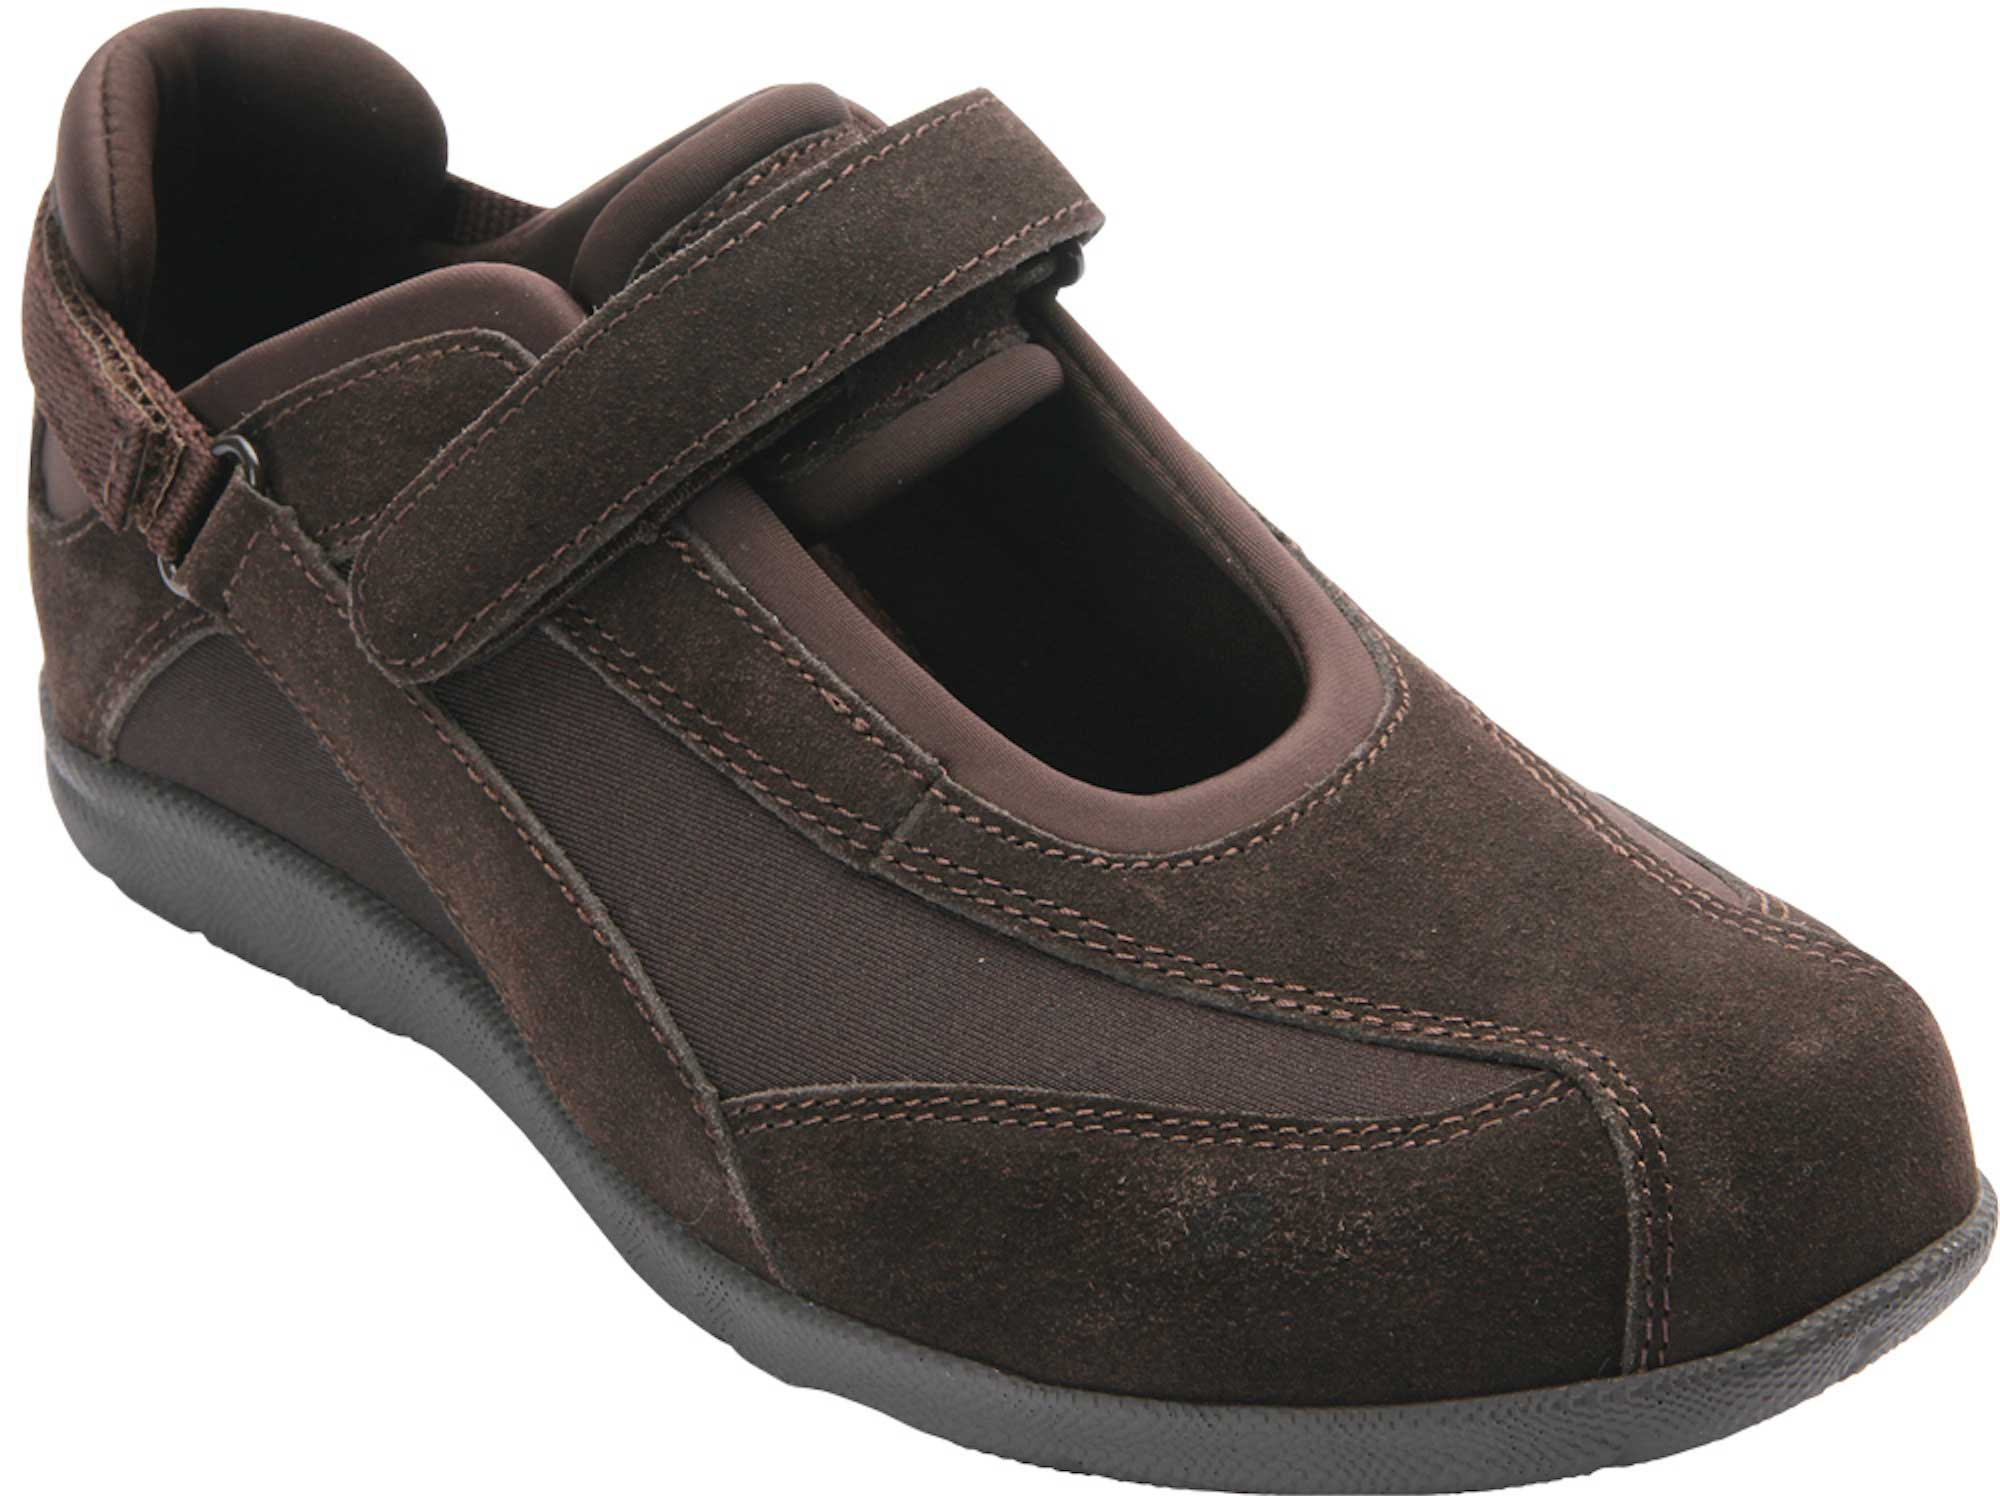 Shoes For Women With Removable Footbed